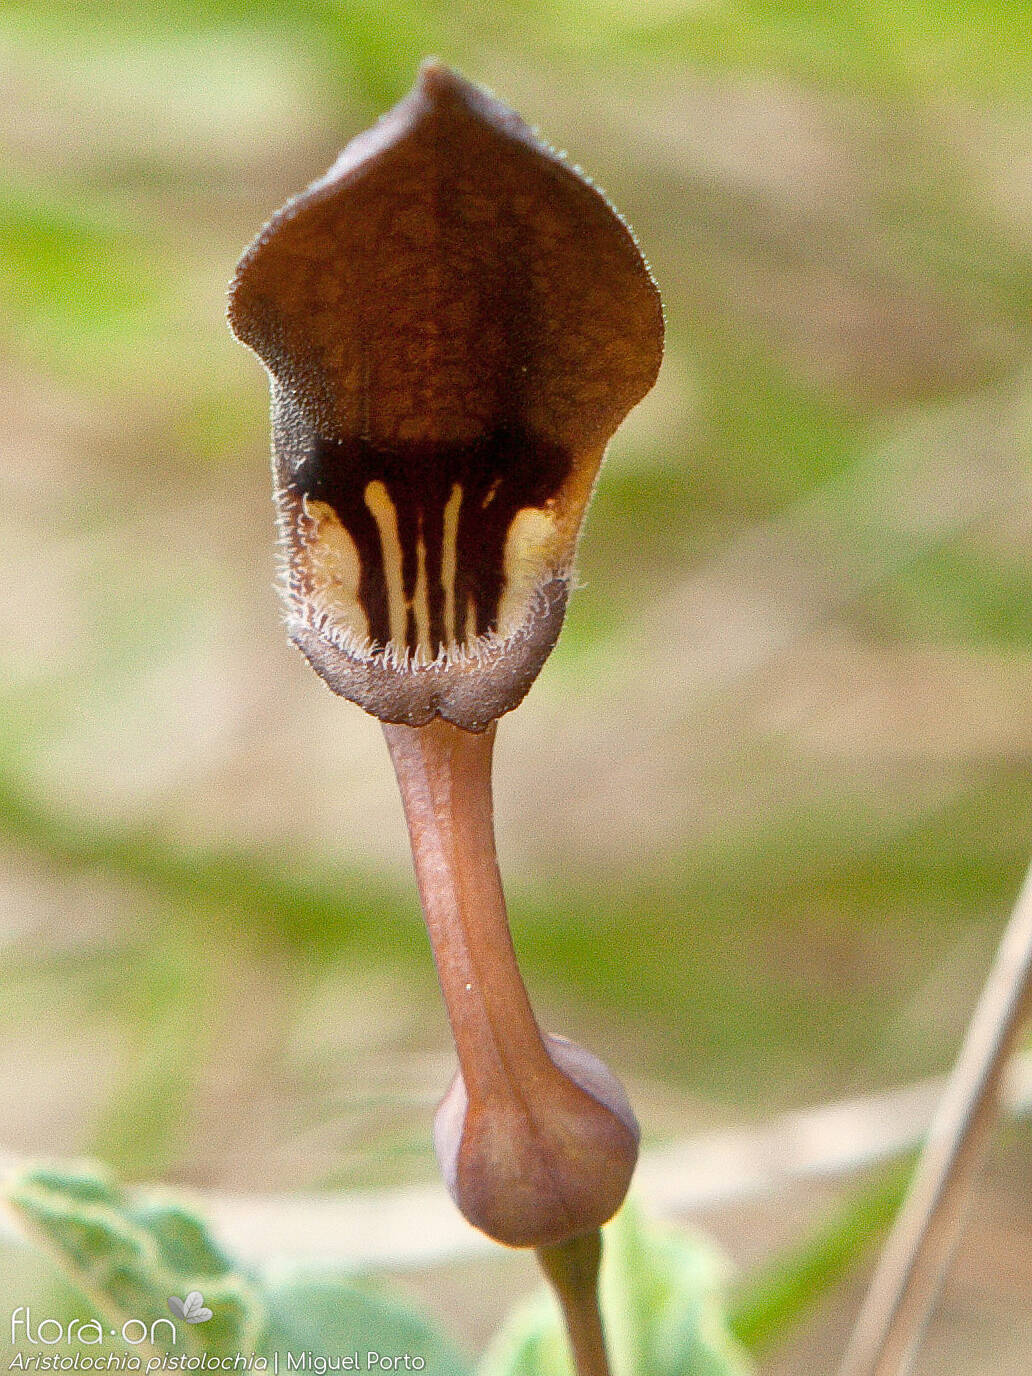 Aristolochia pistolochia - Flor (close-up) | Miguel Porto; CC BY-NC 4.0